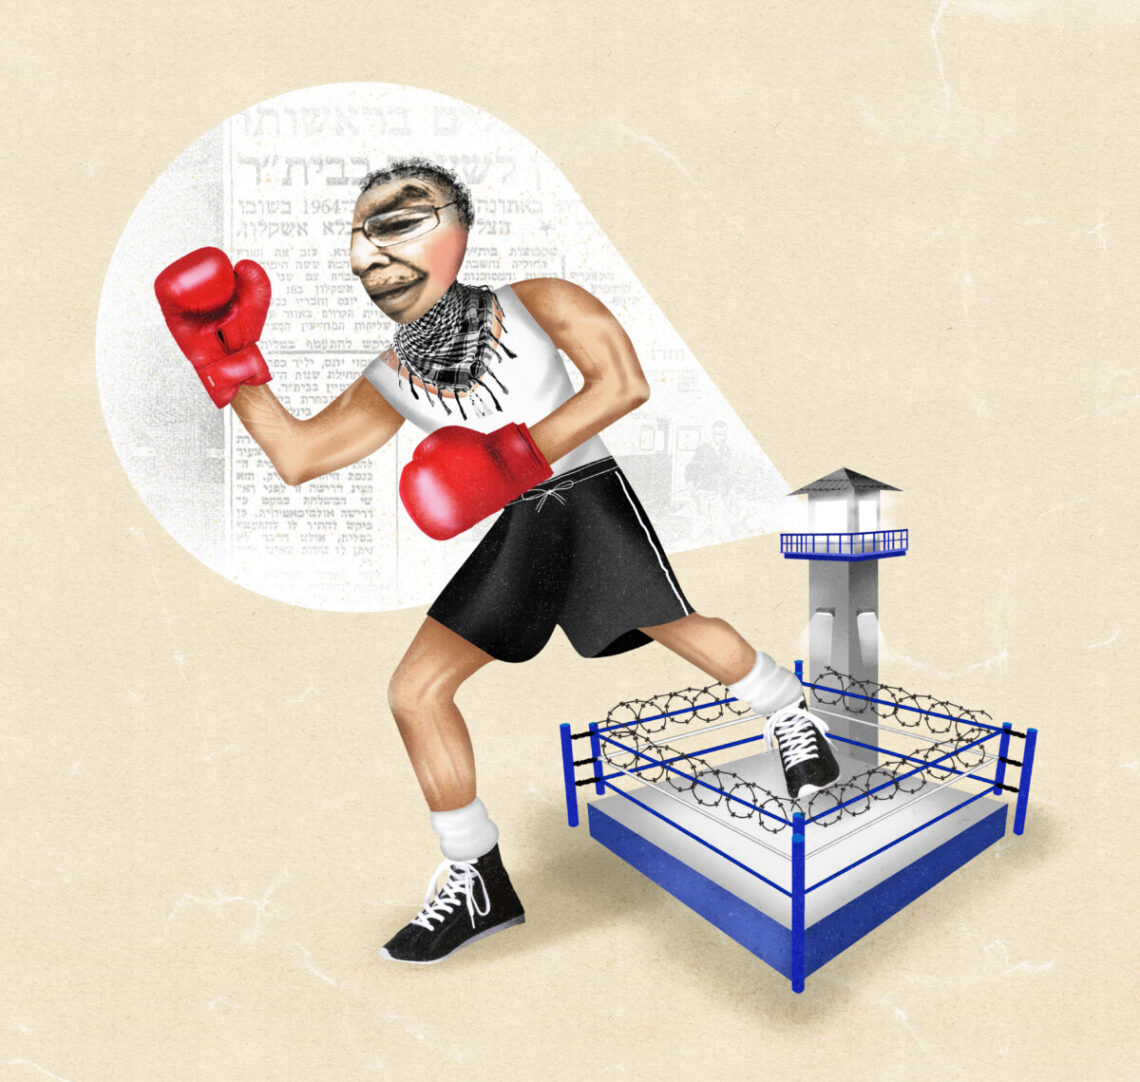 Hamza Younis, a Palestinian boxer who escaped Israel's prisons three times. Illustrated by Onur Askin for Politics Today.